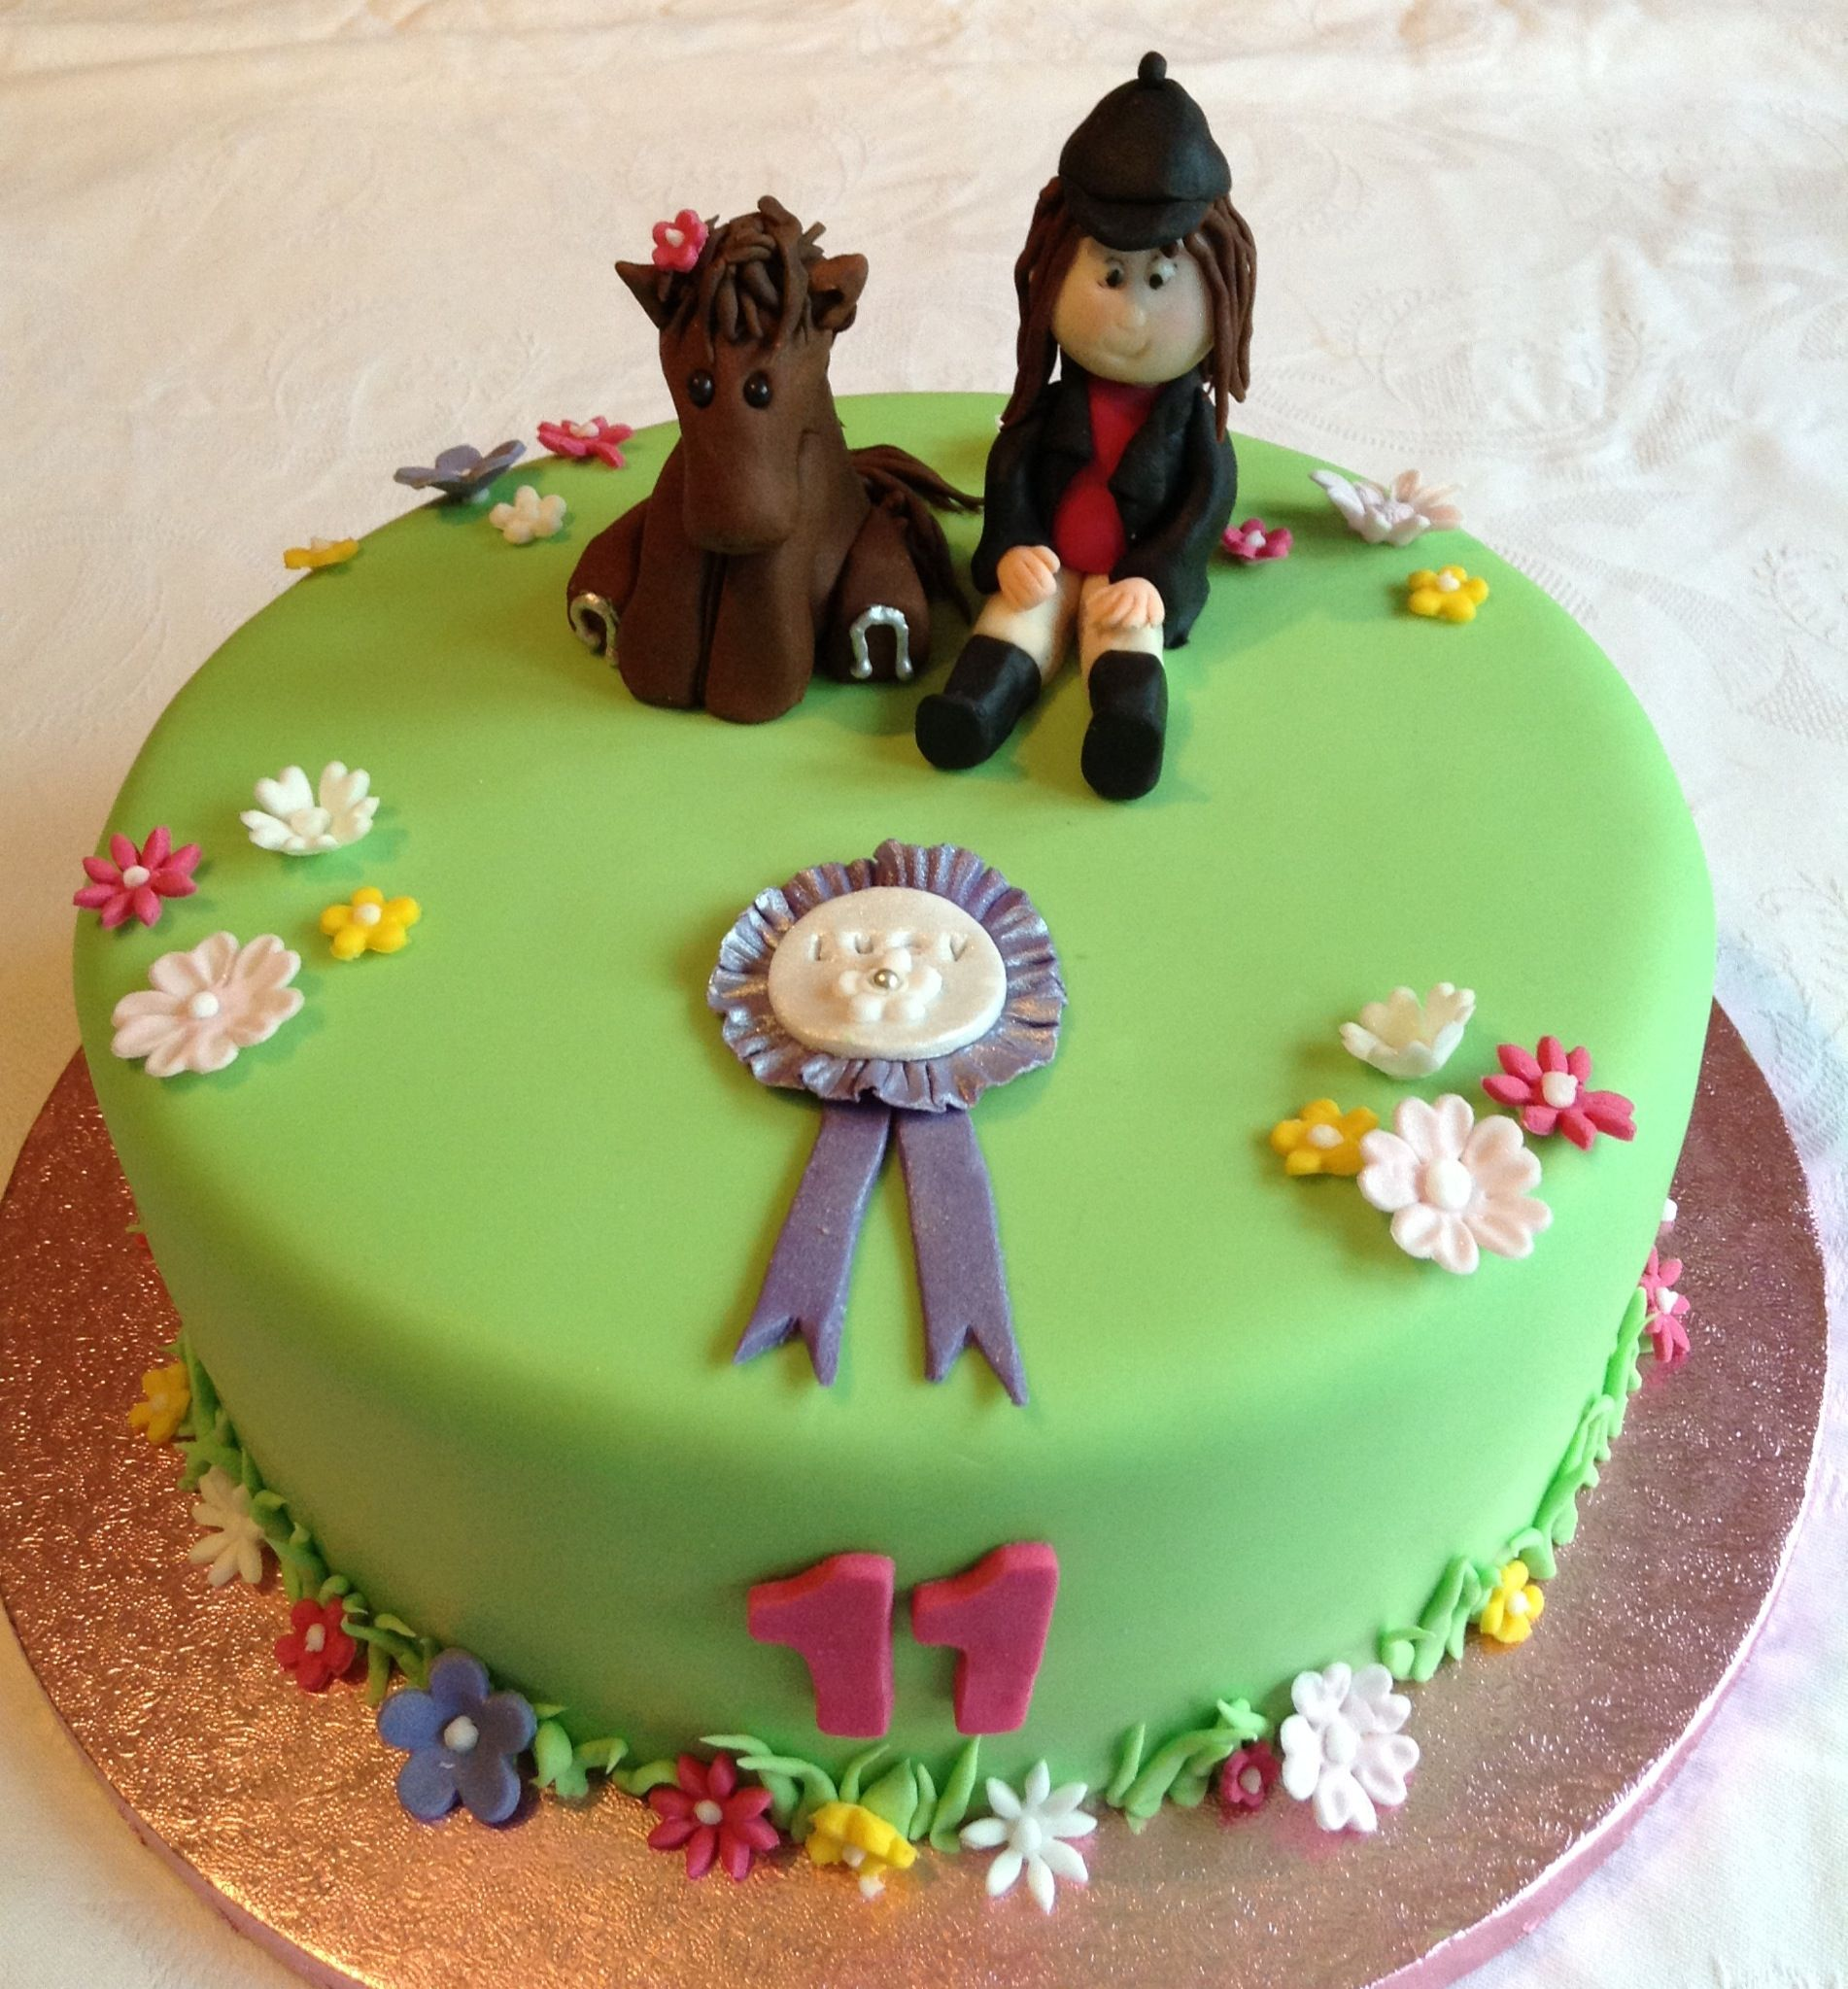 Horse Themed Cake For A Girl Horse Themed Birthday Pinterest - Horse themed birthday cakes